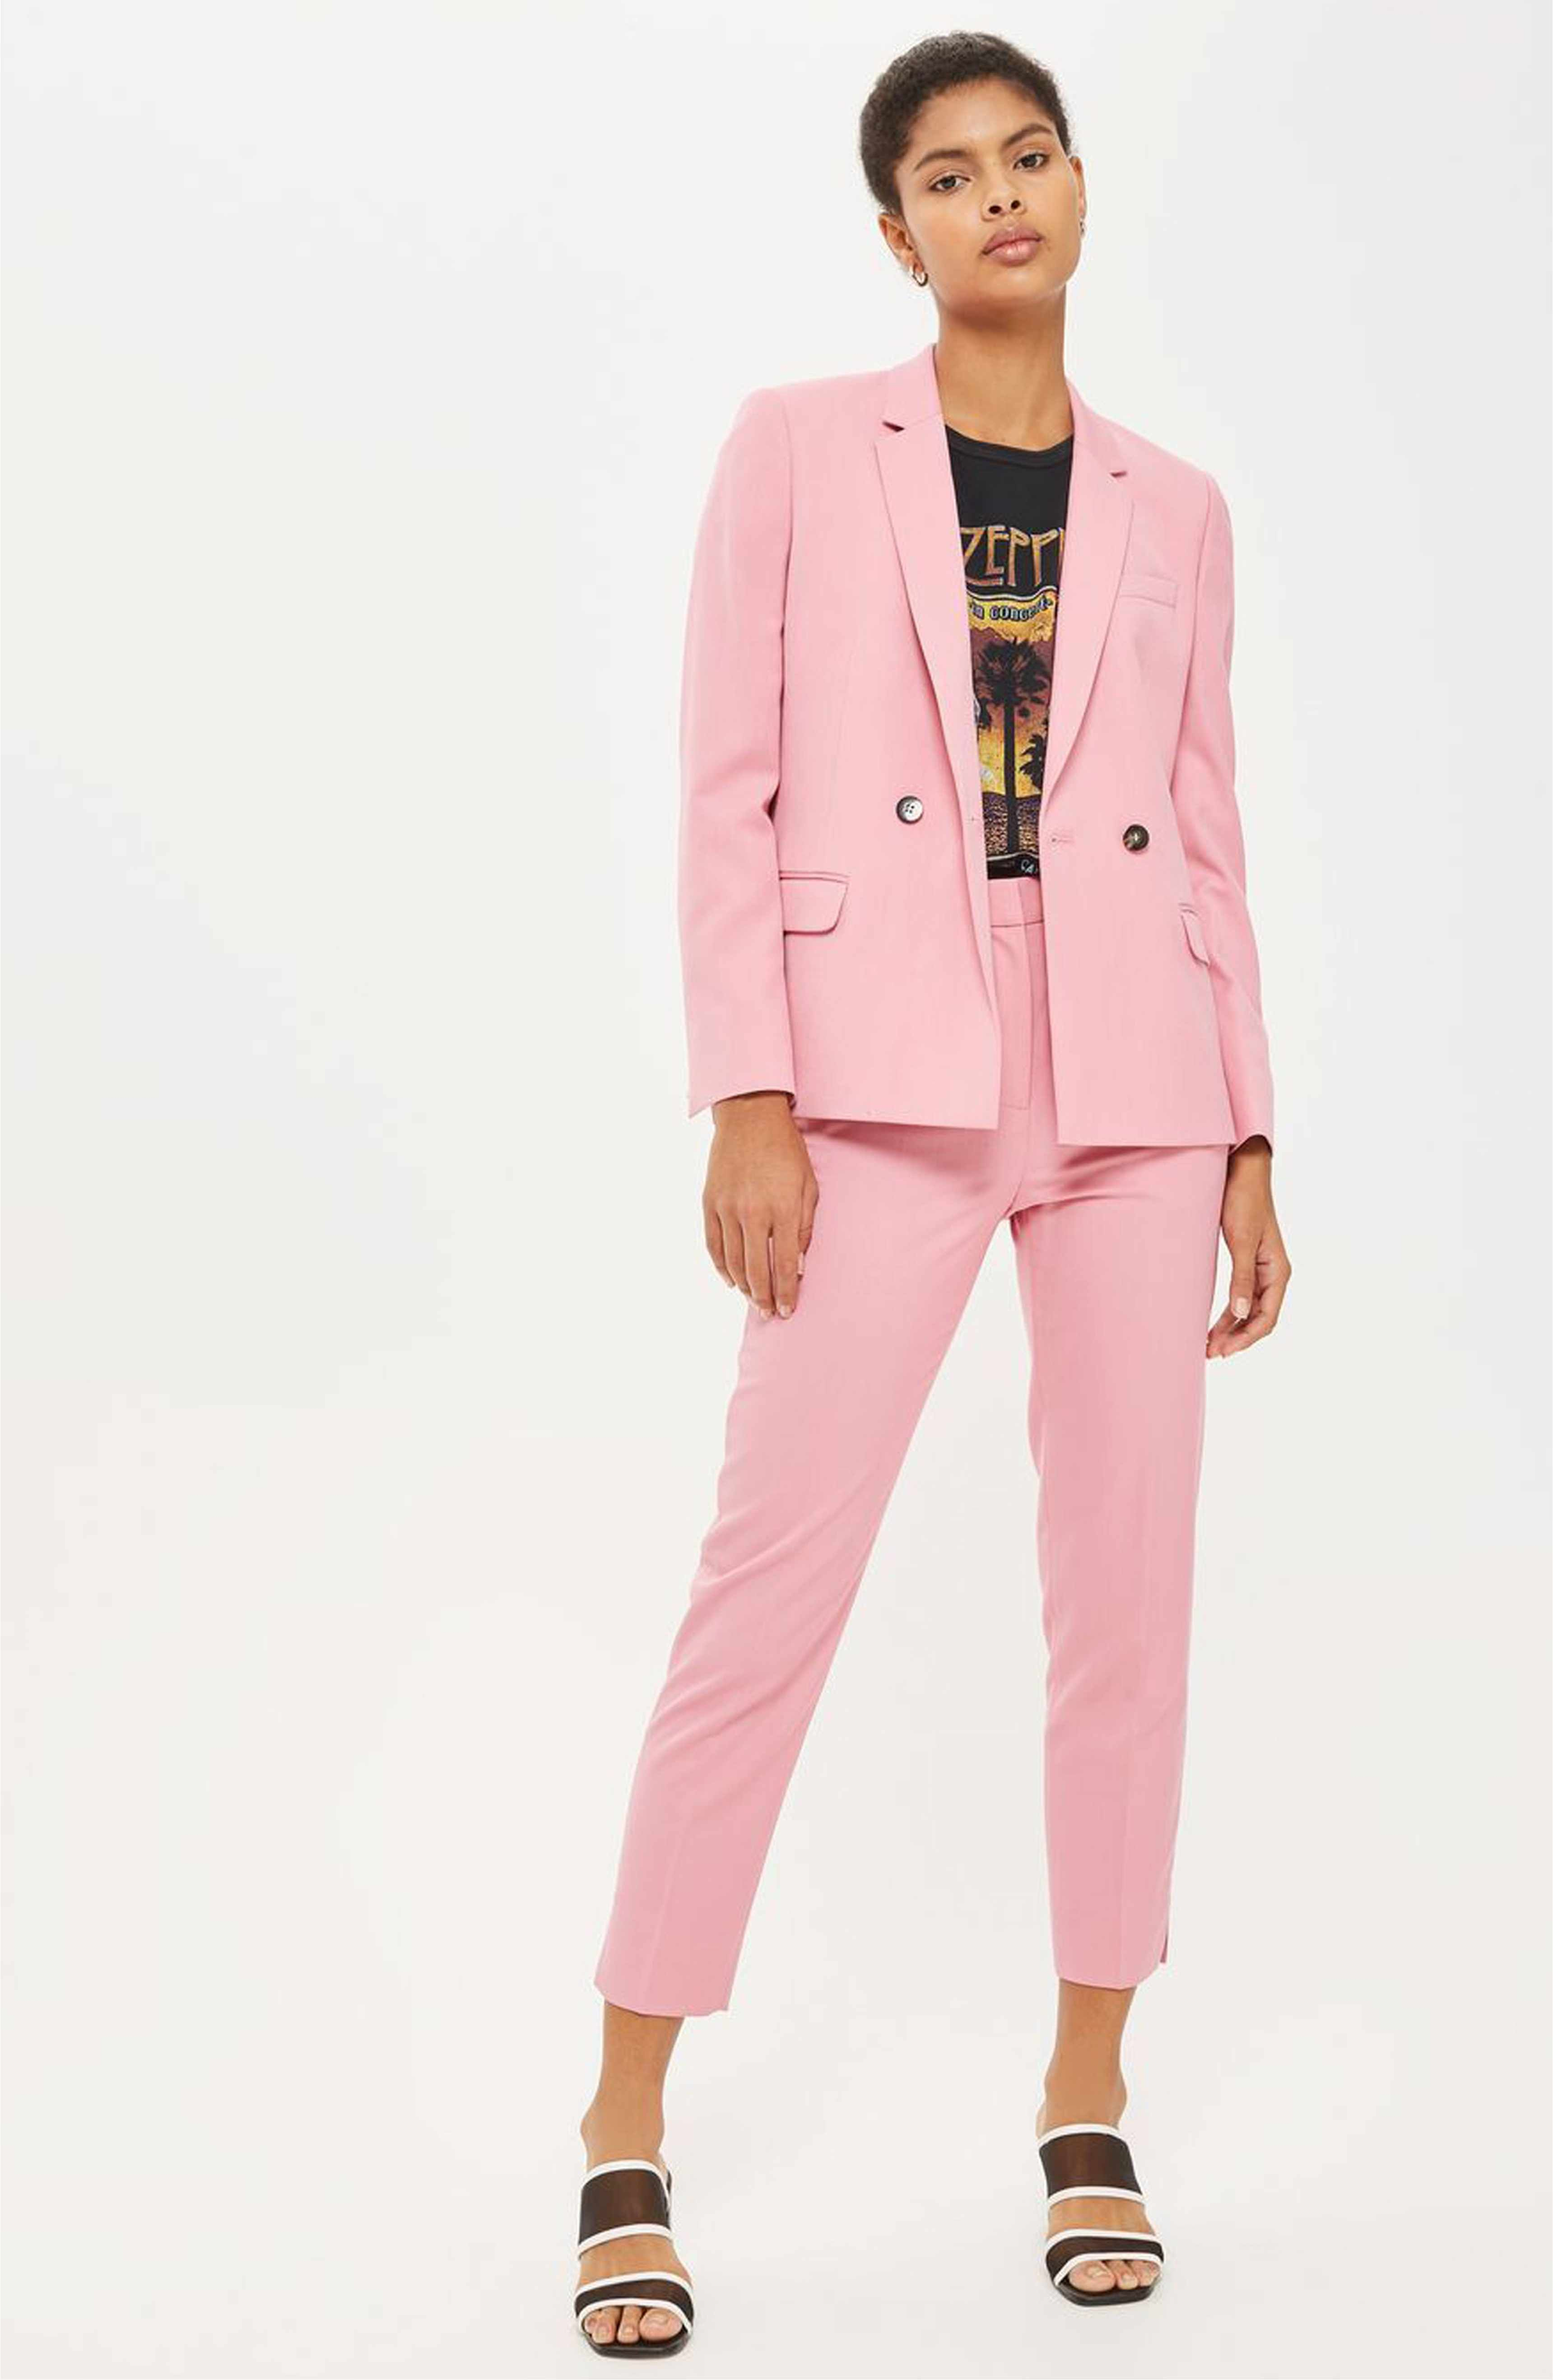 d8306593c588 Main Image - Topshop Double Breasted Suit Jacket | fashion | Jackets ...